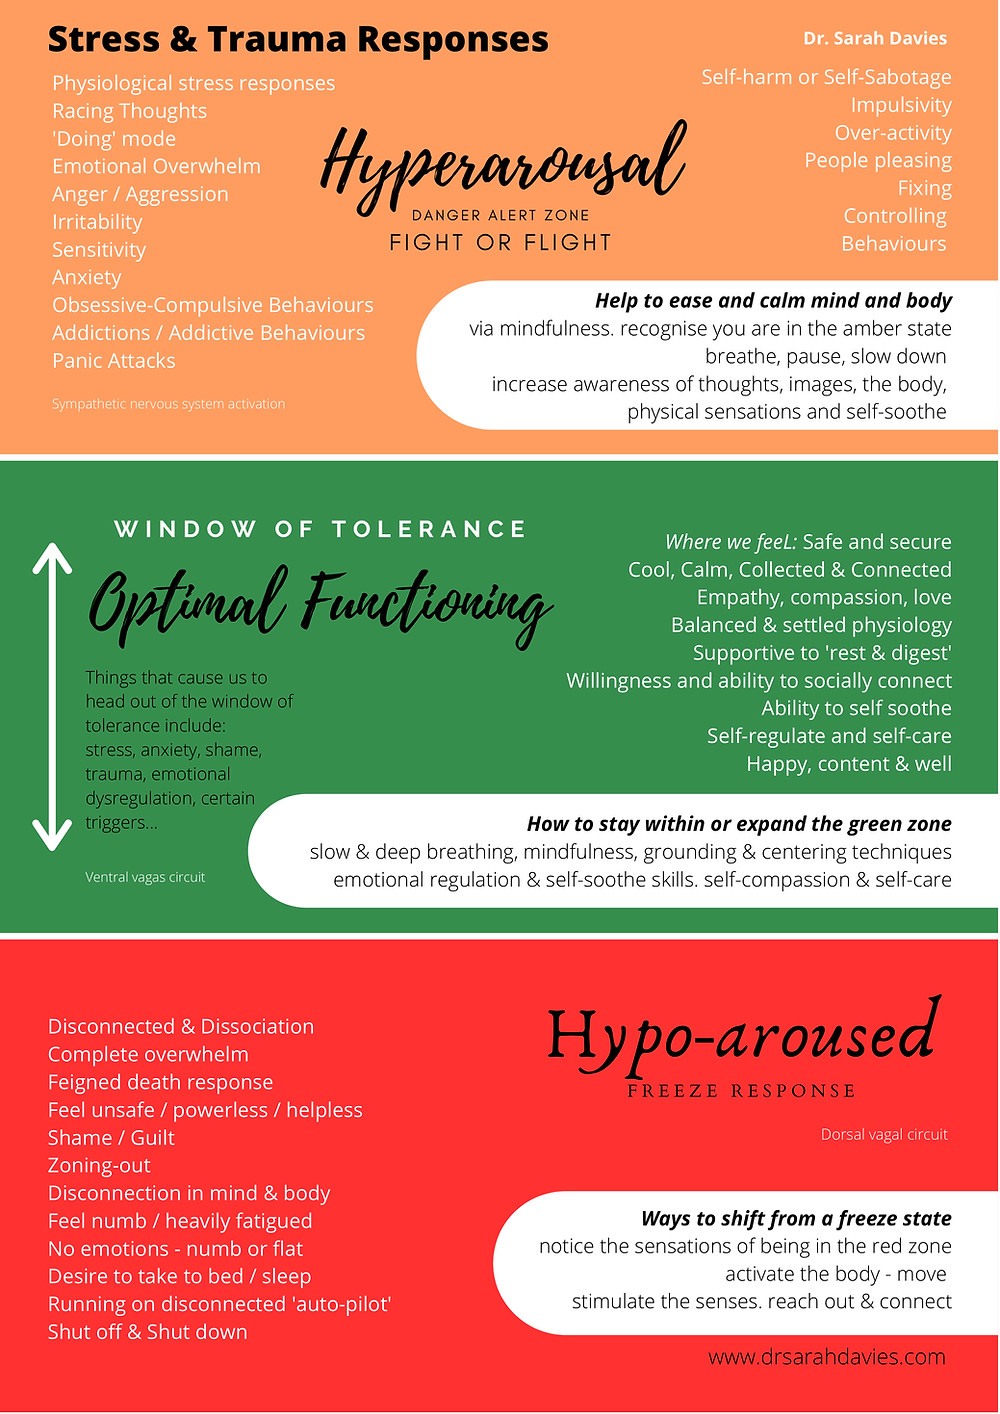 What is the Window of Tolerance - stress and trauma response explained